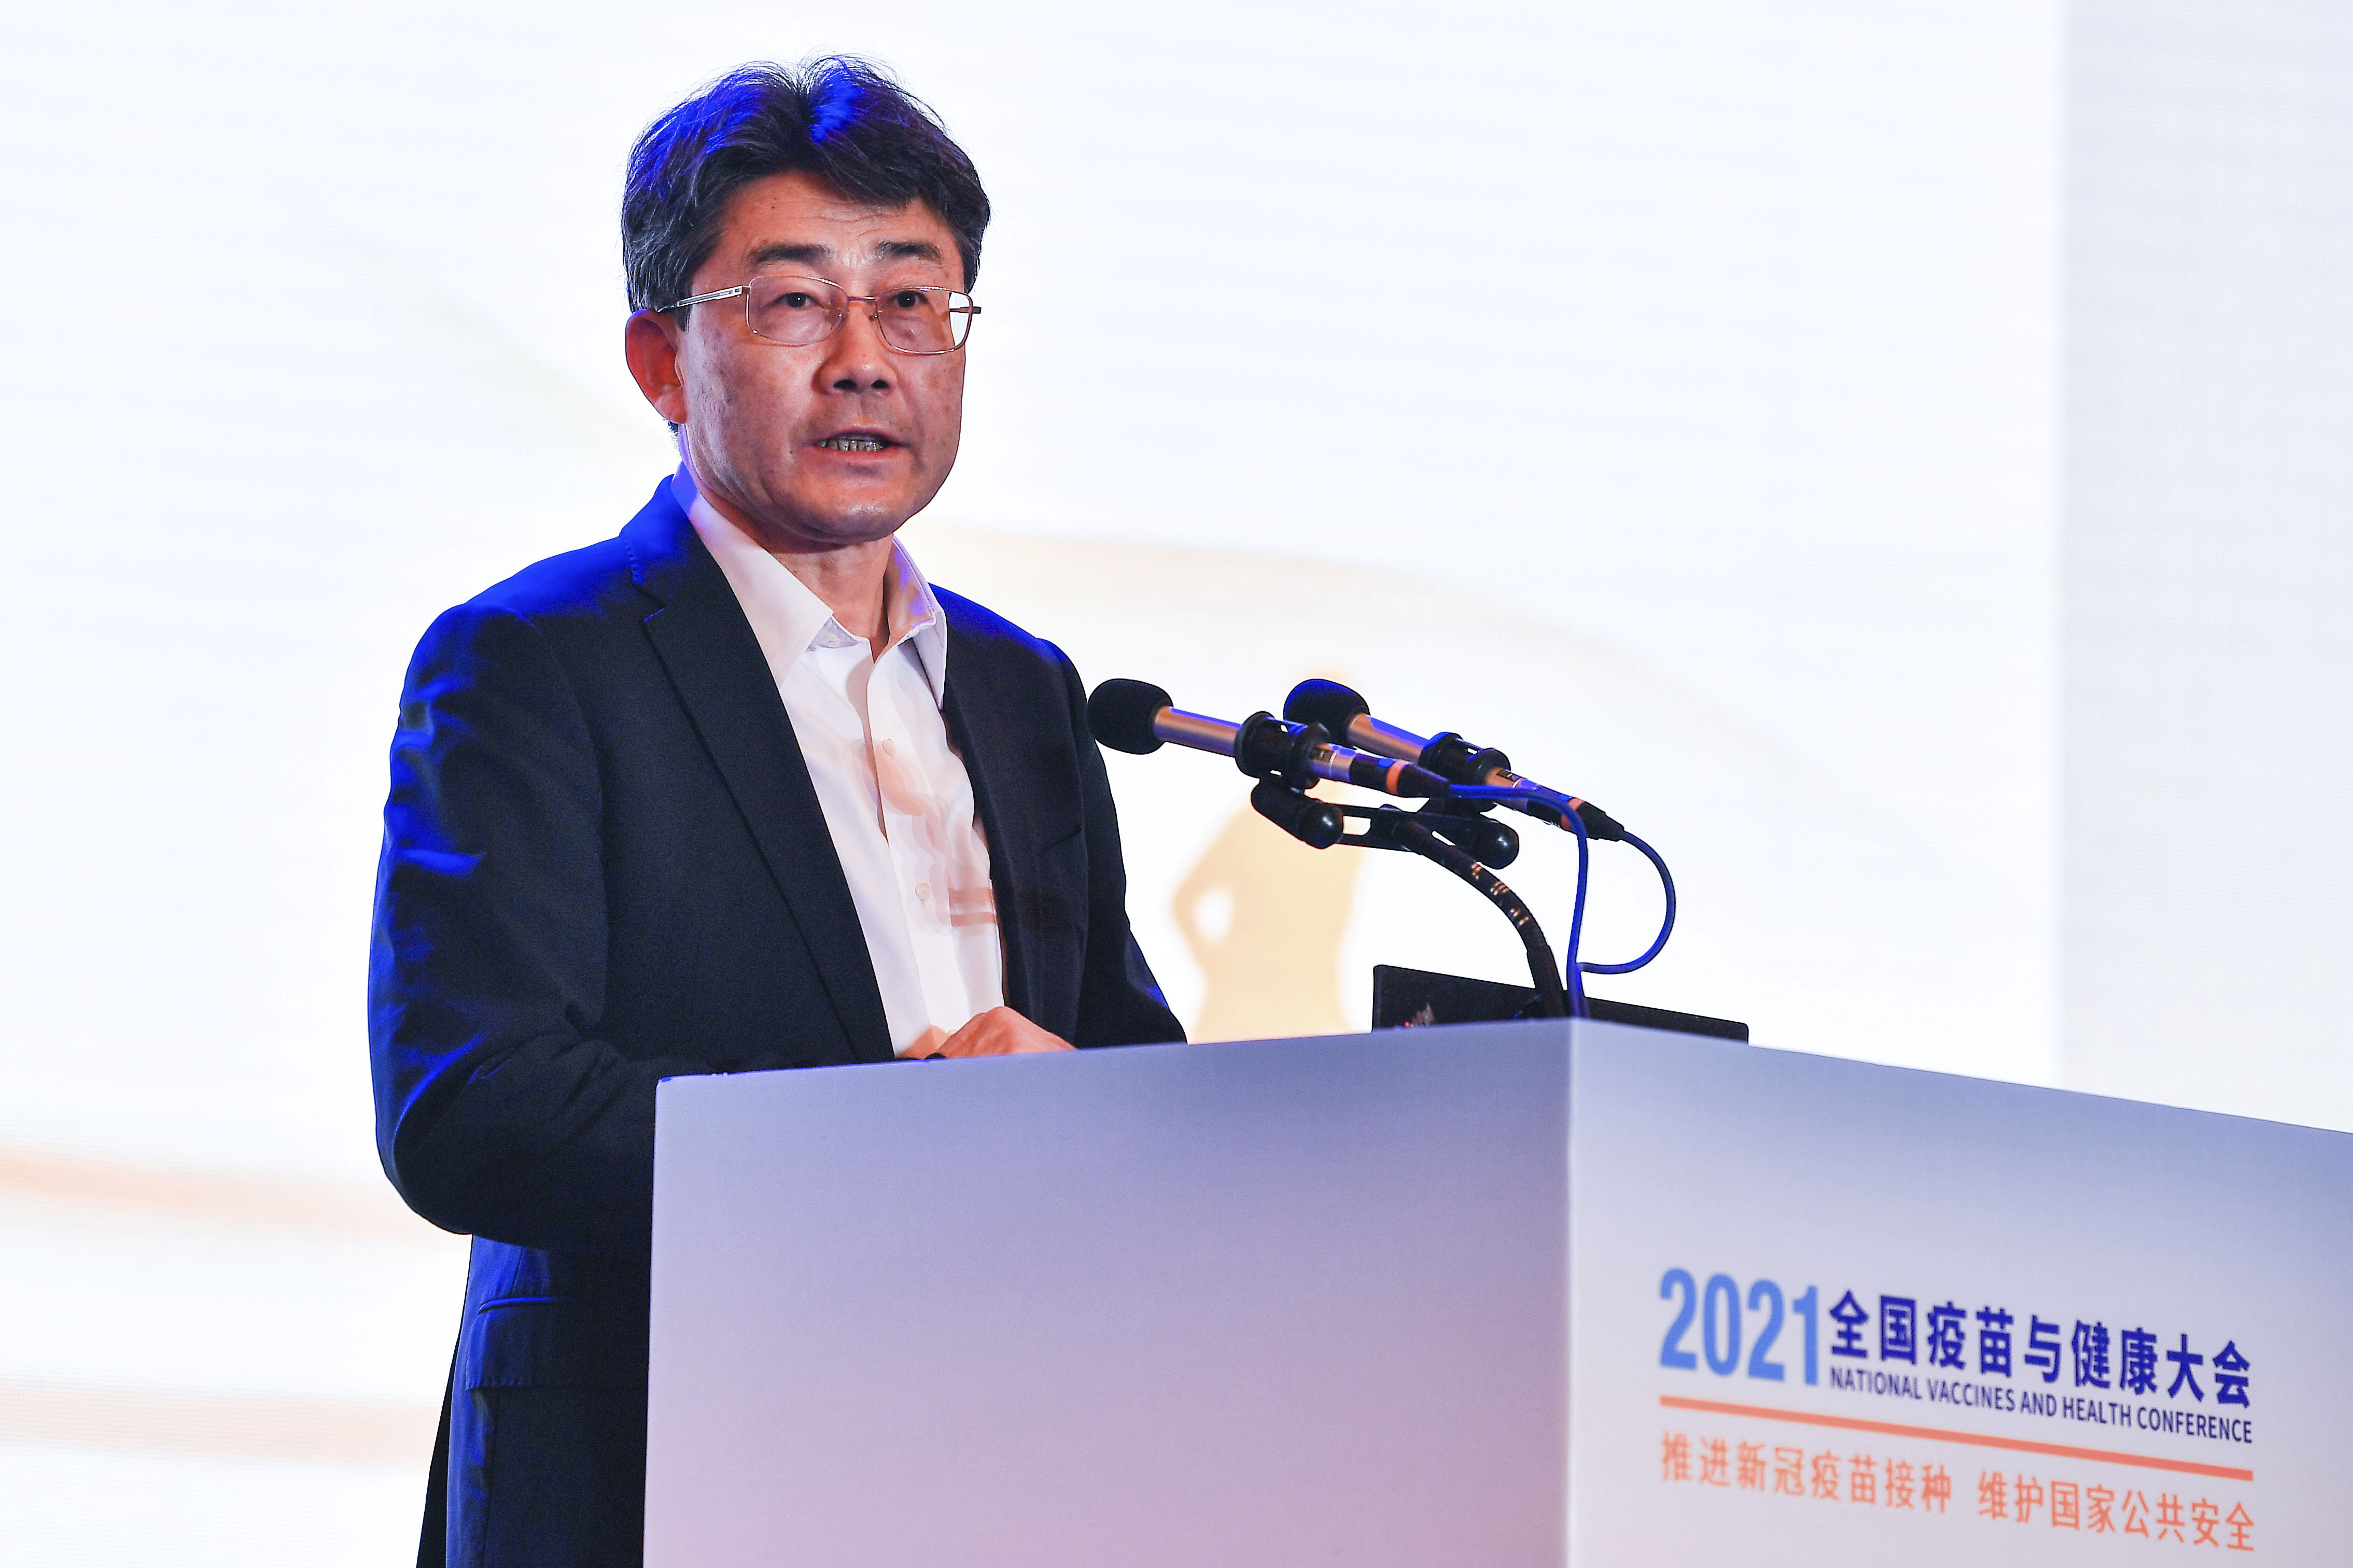 Gao Fu, director of the China Centers for Disease Control, speaks at the National Vaccines and Health conference in Chengdu in southwest China's Sichuan province Saturday, April 10, 2021.